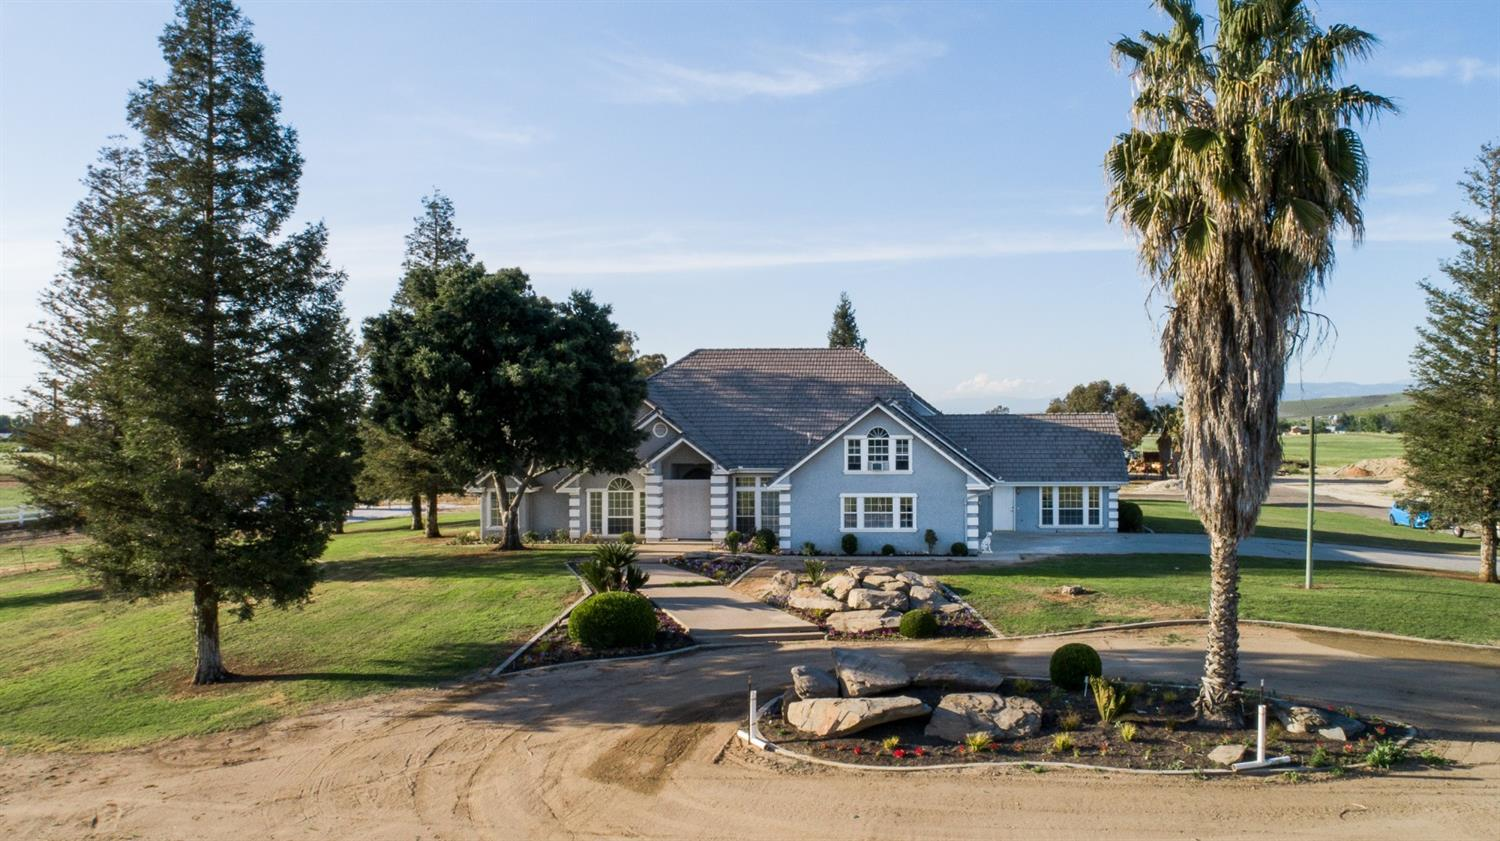 This one-owner custom home on 20 acres is a must-see. The 4,000+ sq. ft. home has 3 bedrooms on one side and two bedrooms on the other (with its own entrance) making it a perfect setup for a large family, multi-generational living, or home-based business. The large room above the garage would be an ideal game room or a 6th bedroom. The paid solar makes this home very inexpensive to maintain. The 7000 sq. ft. shop is wired with 3-phase power and has large roll-up doors on each end of the main center area, as well as plenty of work area on both the north and south sides with many sliding doors for easy access. The north side was designed with ease of converting it to stalls in mind. The property has water rights from the Enterprise Canal with pipes in place for irrigating the entire parcel. The back pasture is fenced for horses and has a year-round pond. Schedule your appointment to view this property today!